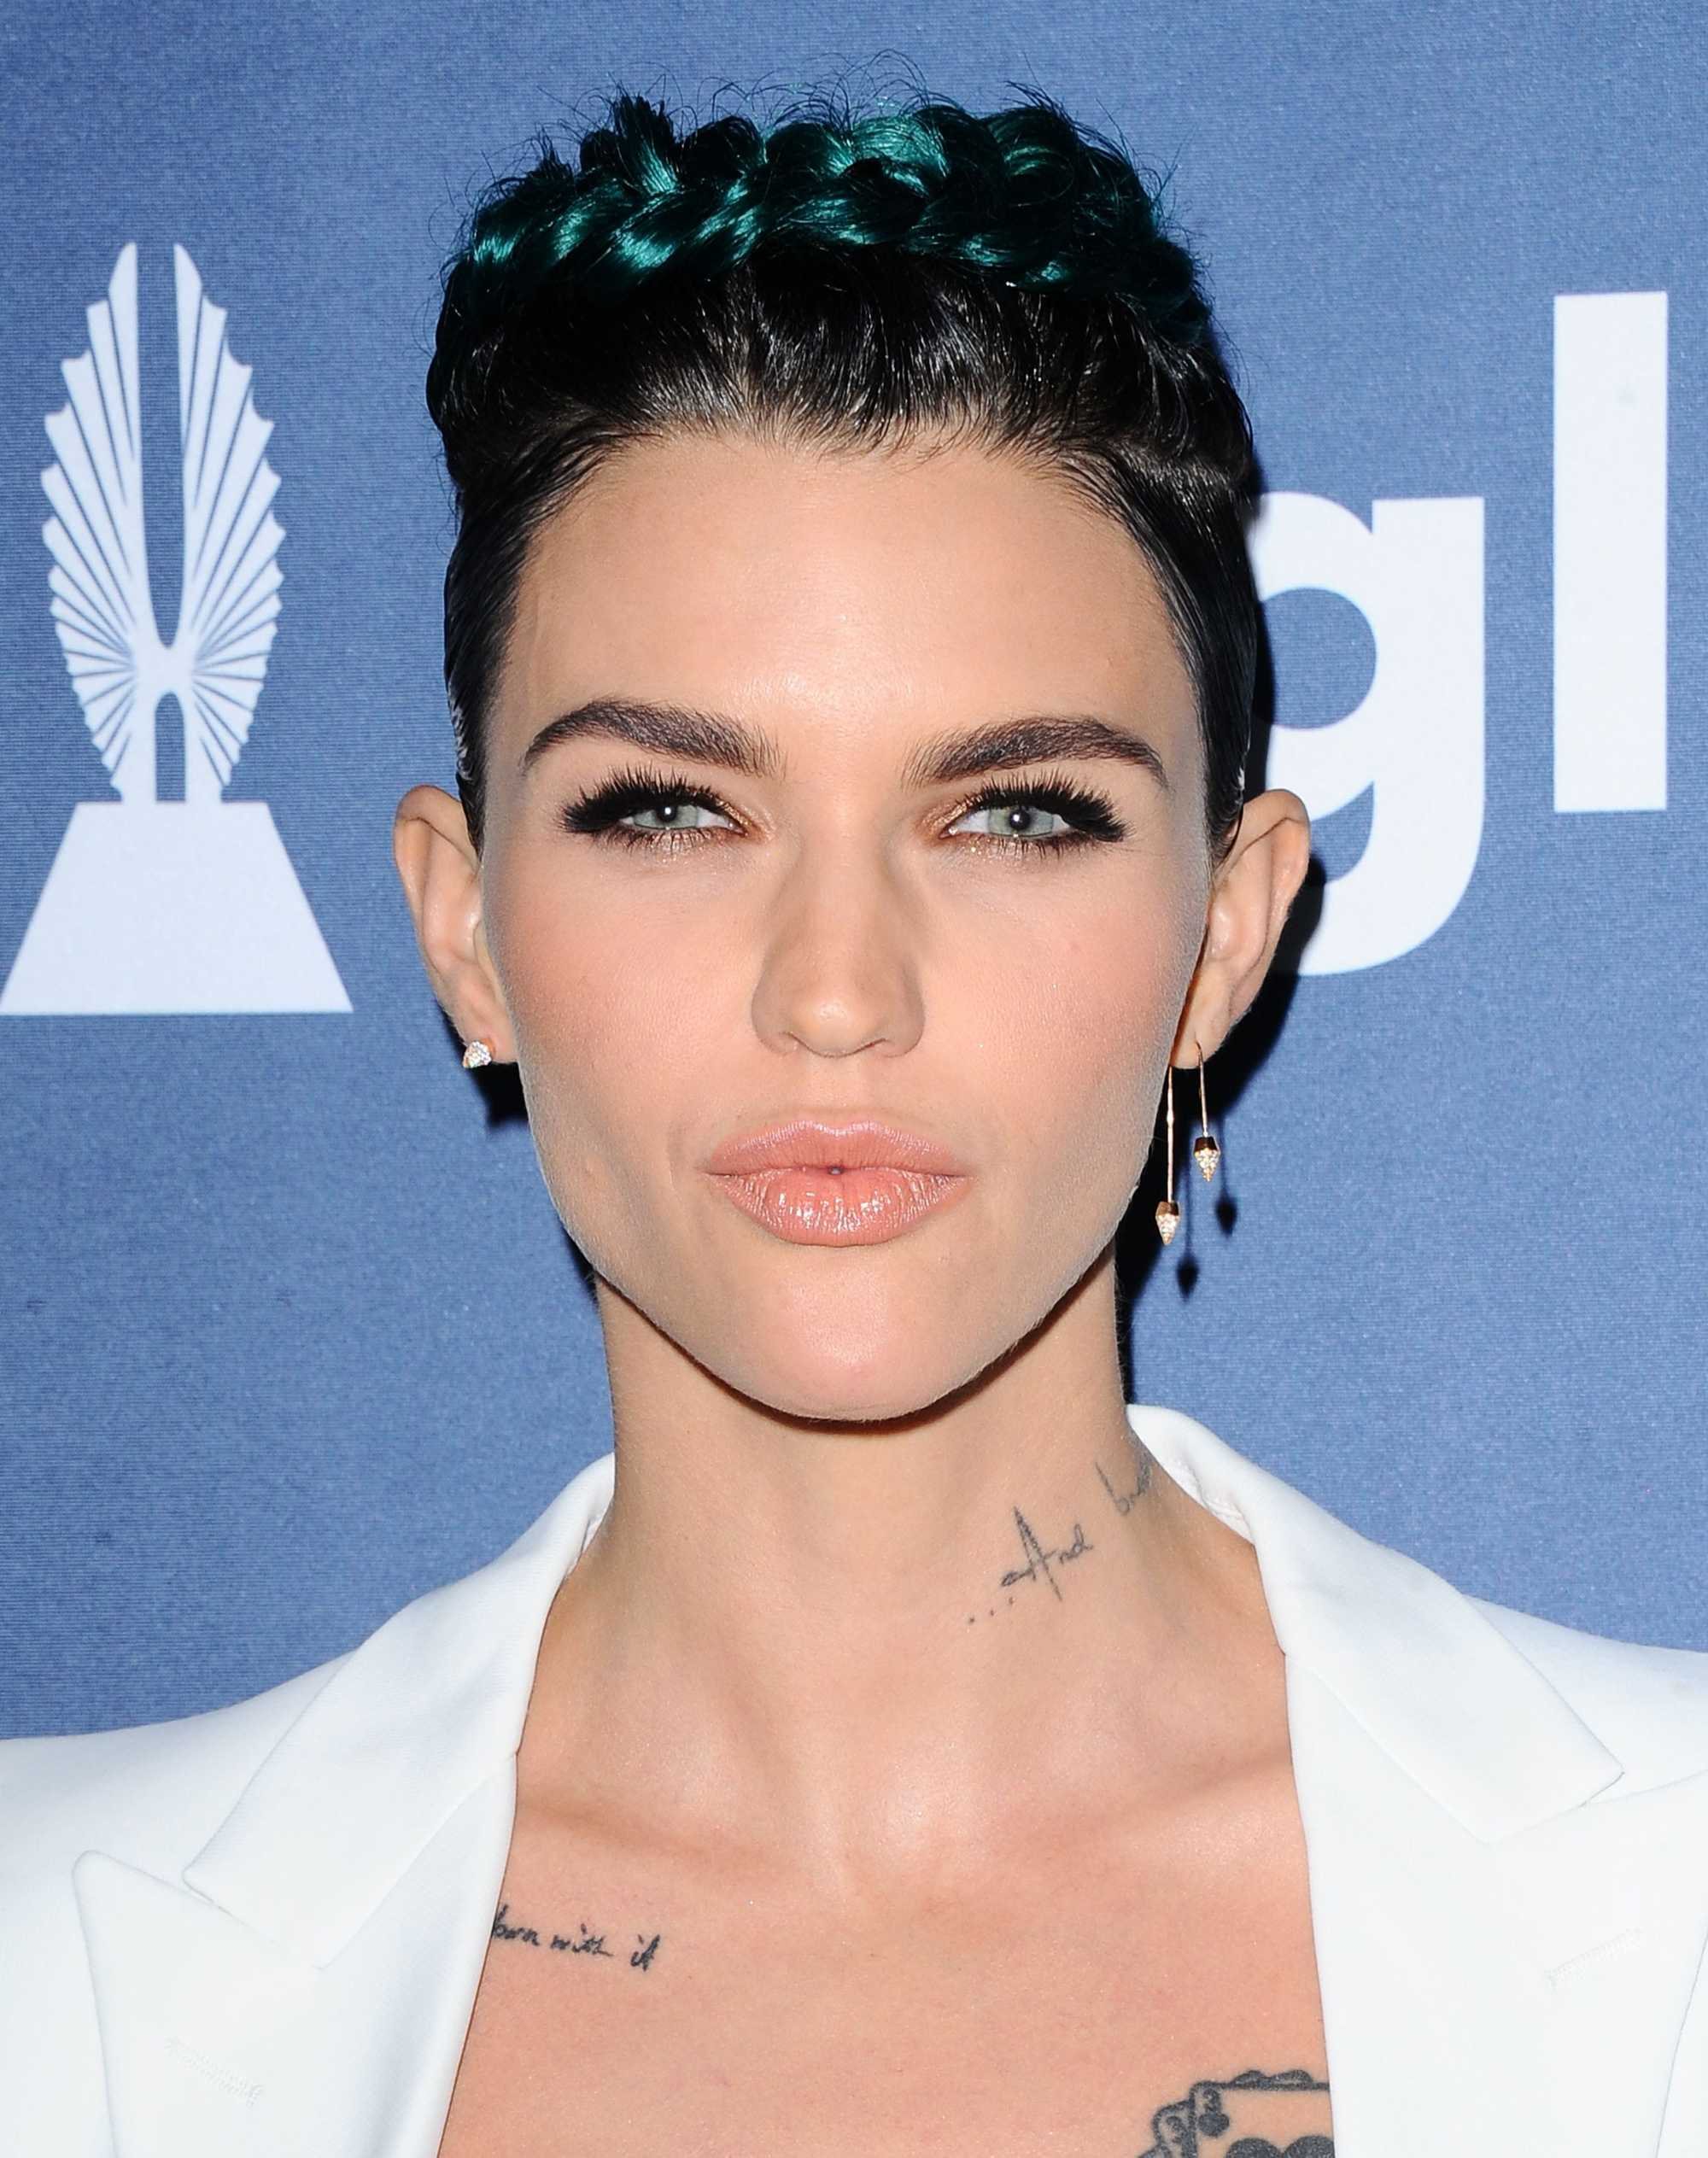 actress ruby rose with dark green pixie hair in a braided headband style wearing a white blazer jacket